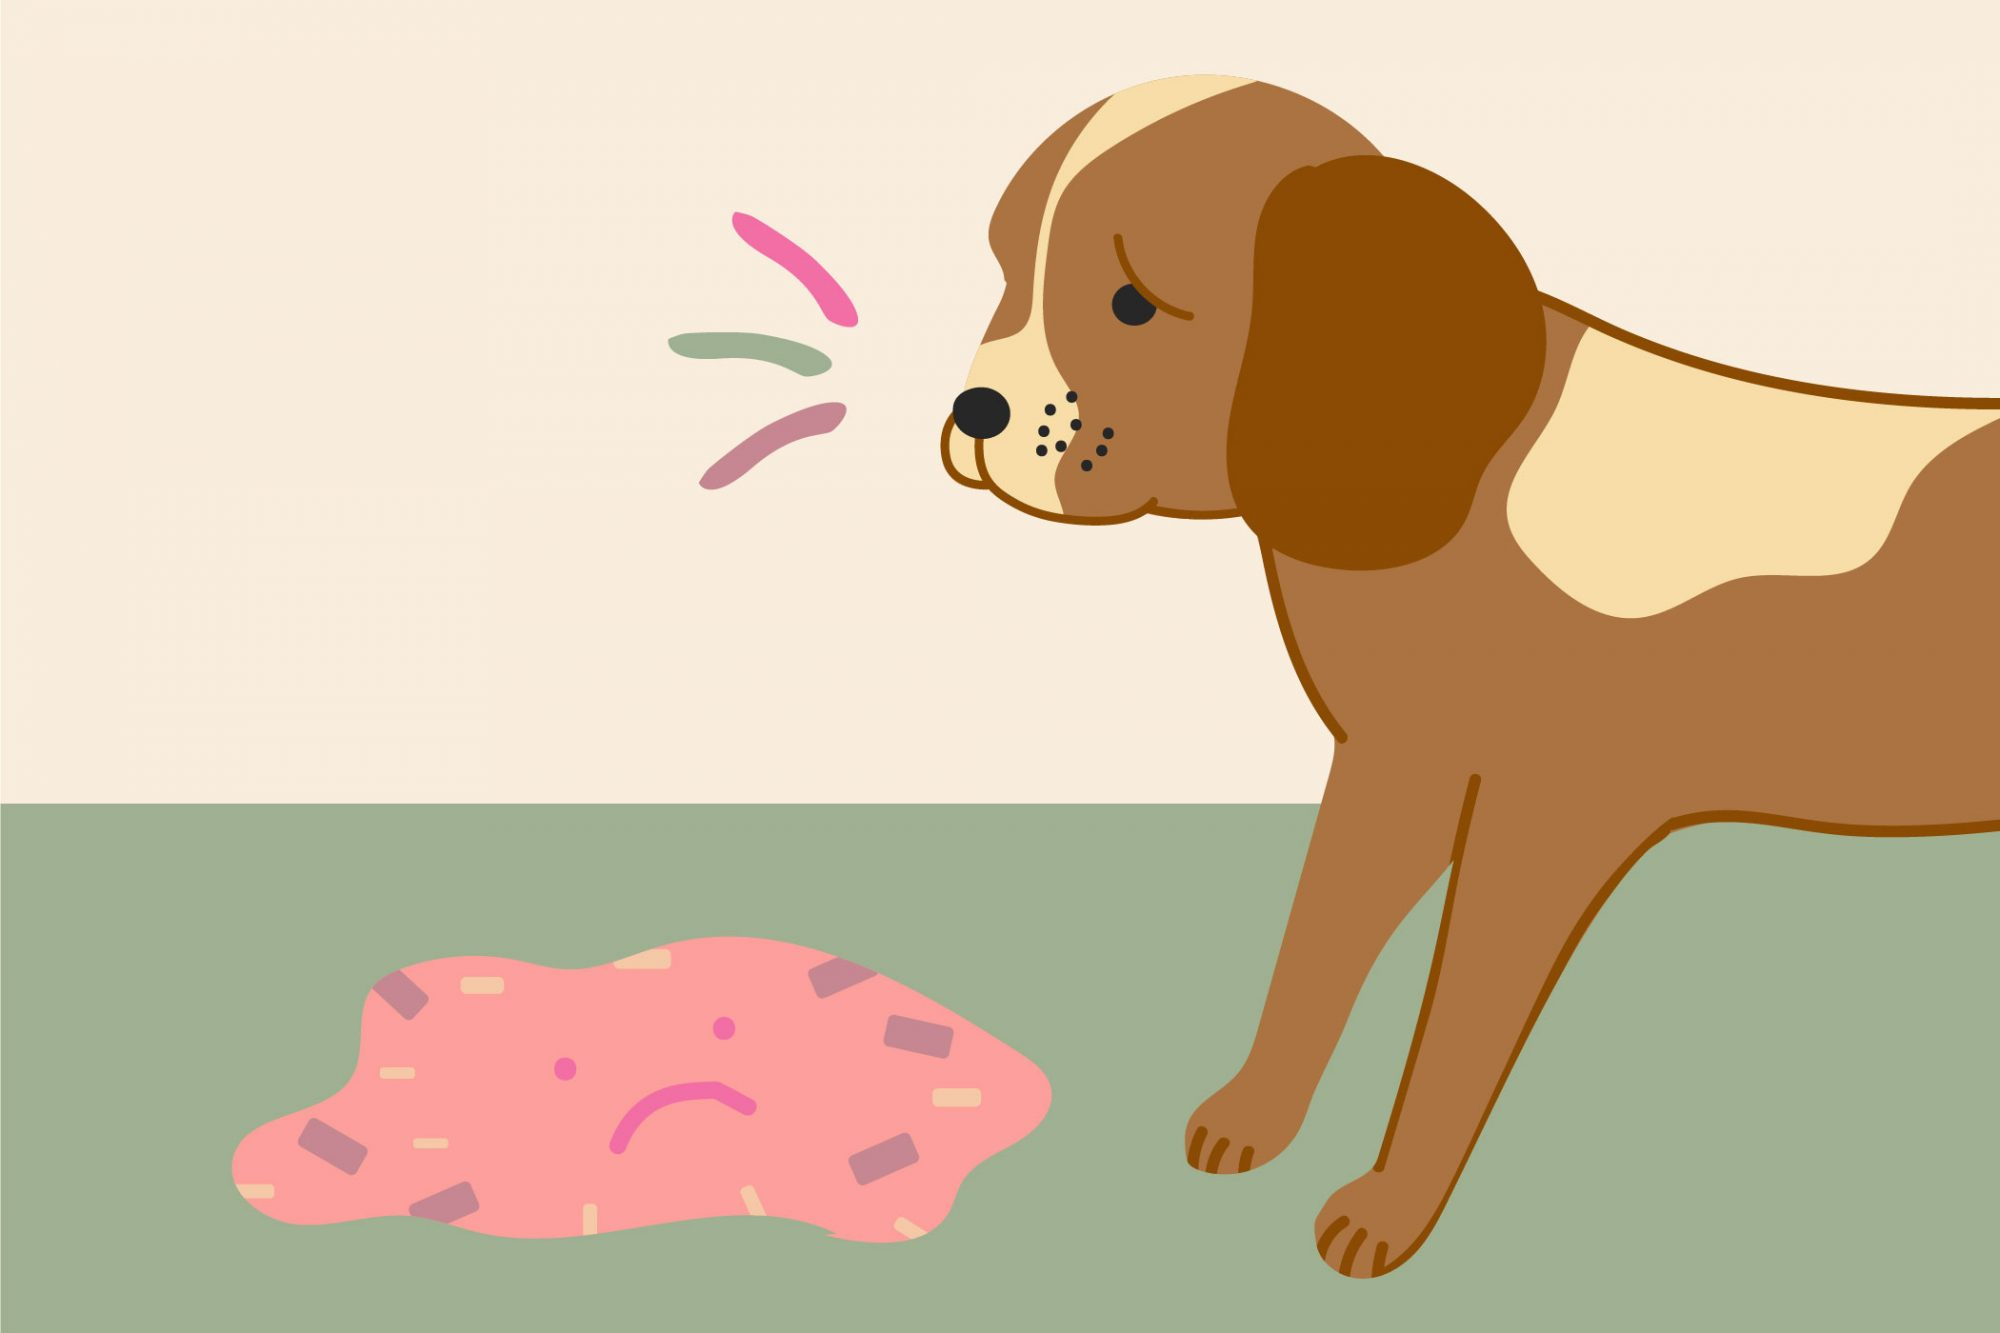 illustration of a dog who has thrown up